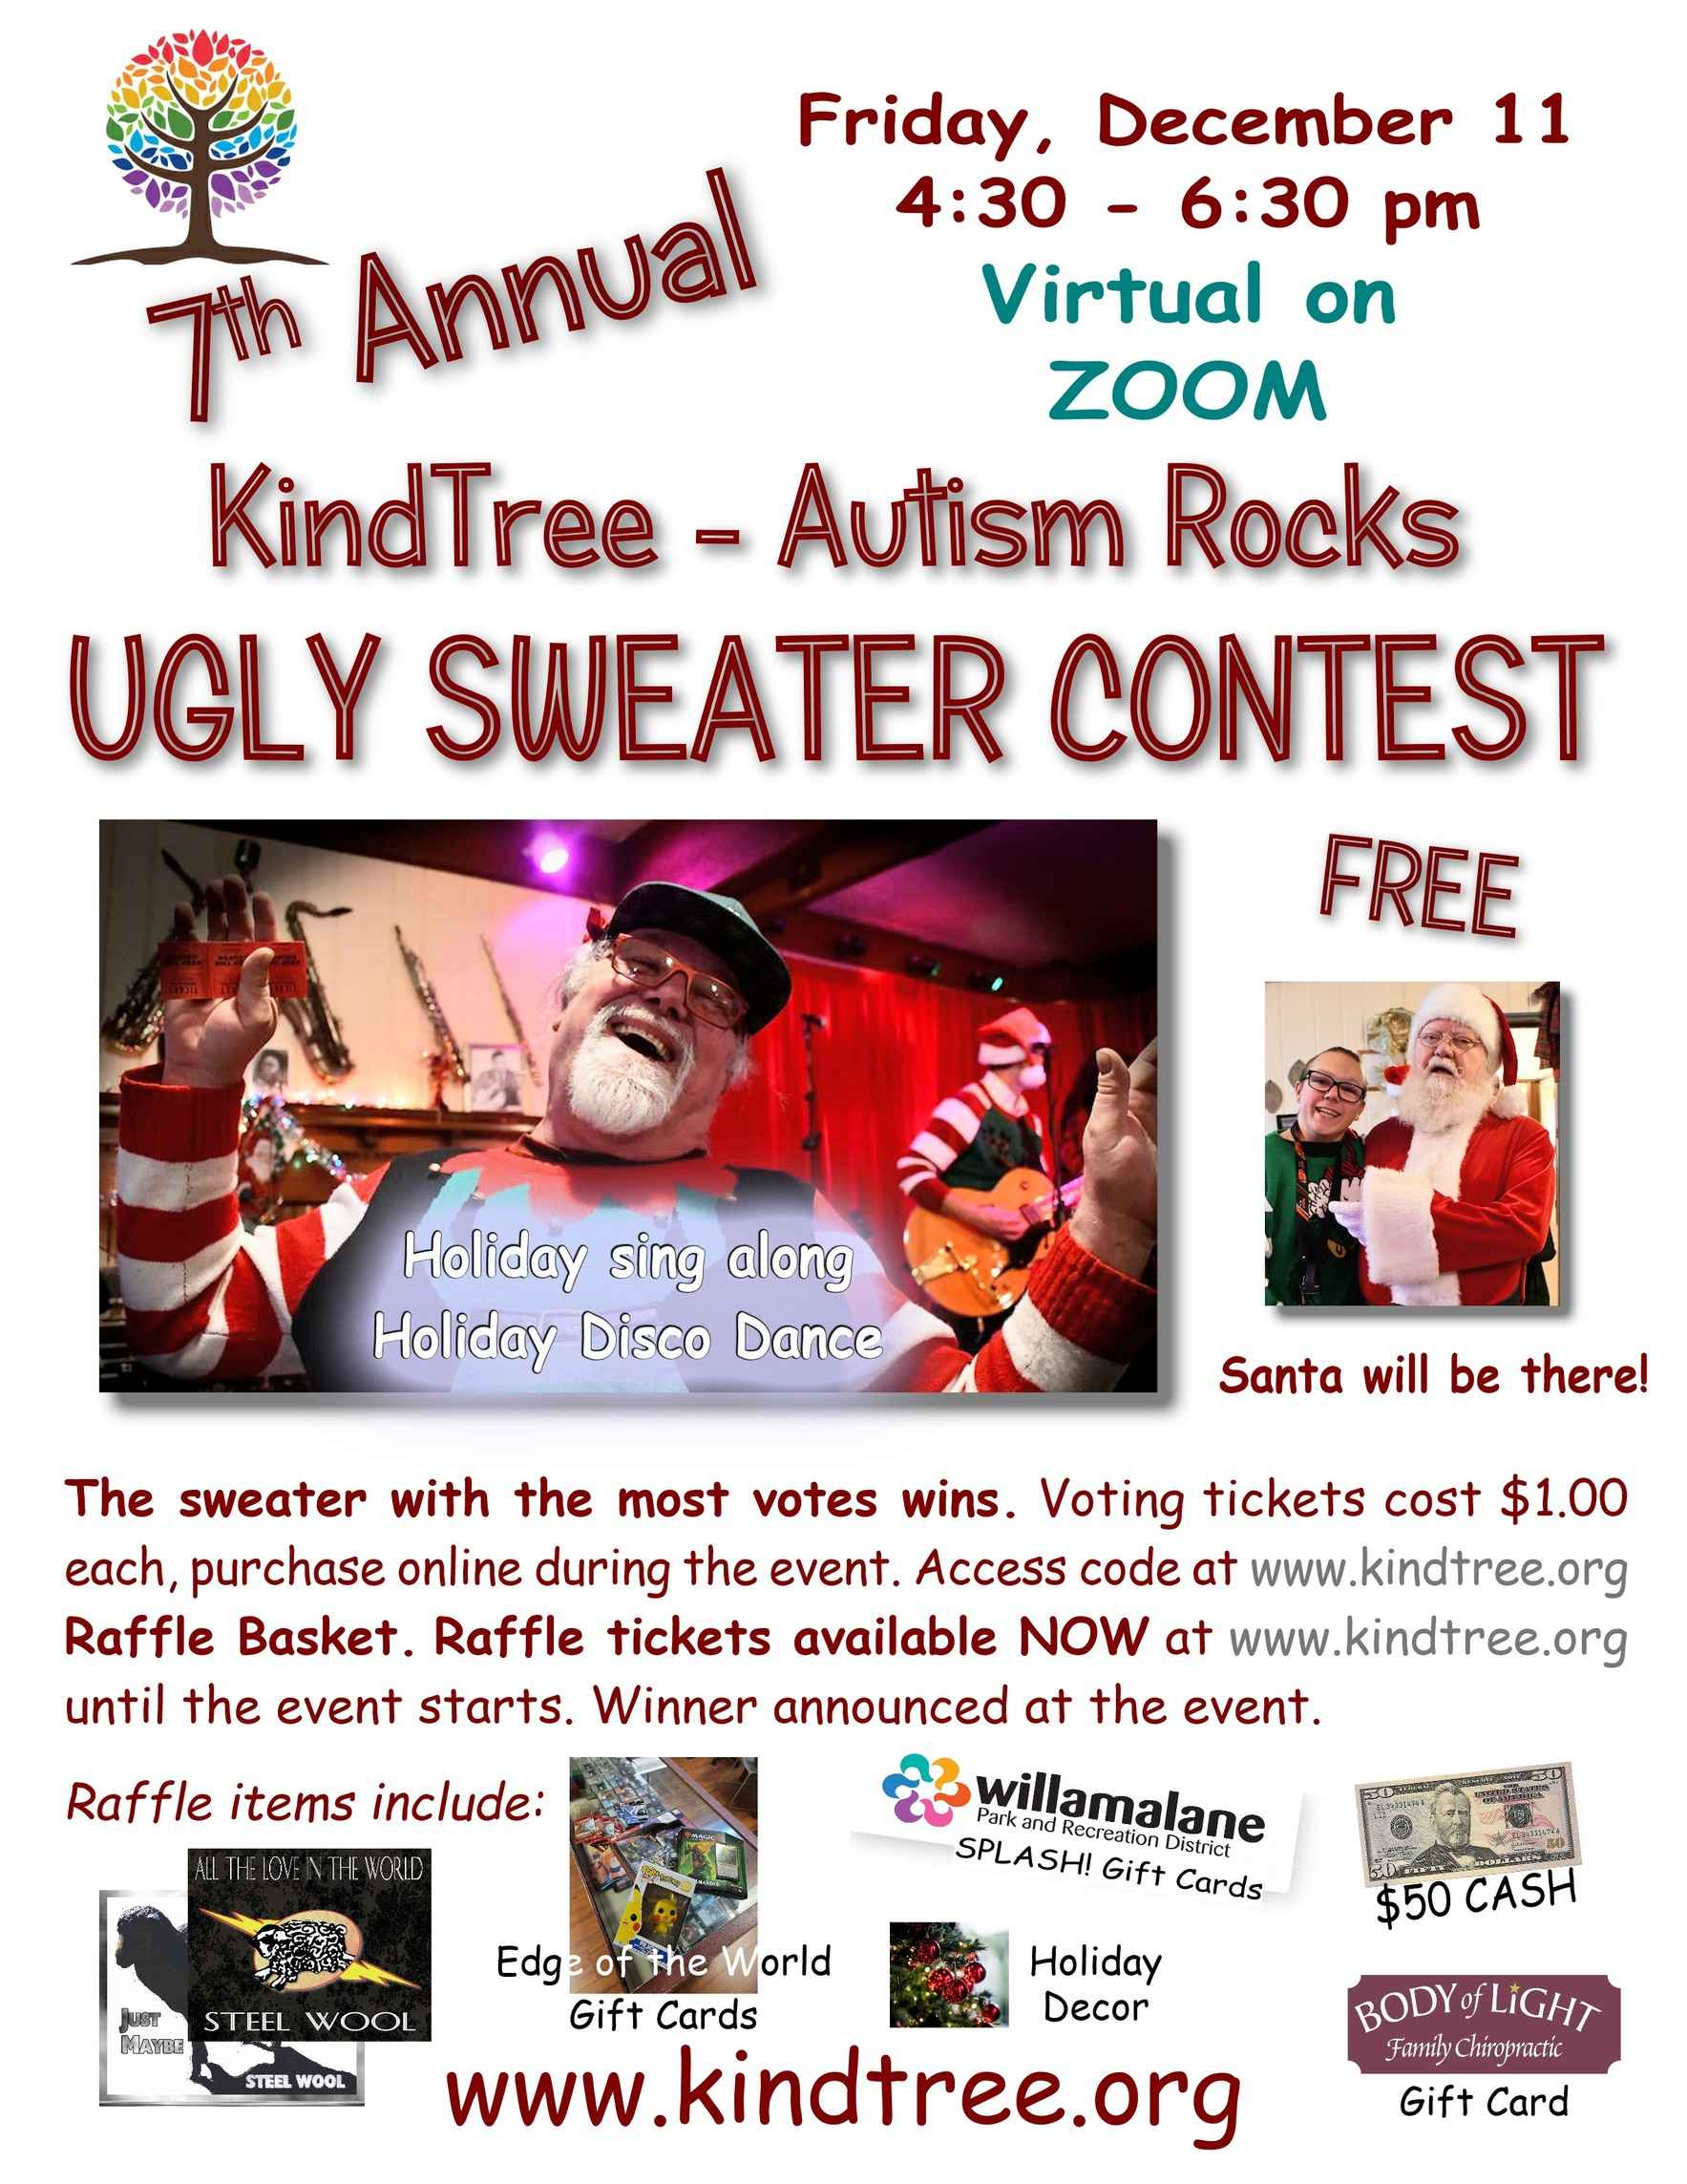 7th Annual Ugly Sweater Contest and Party image